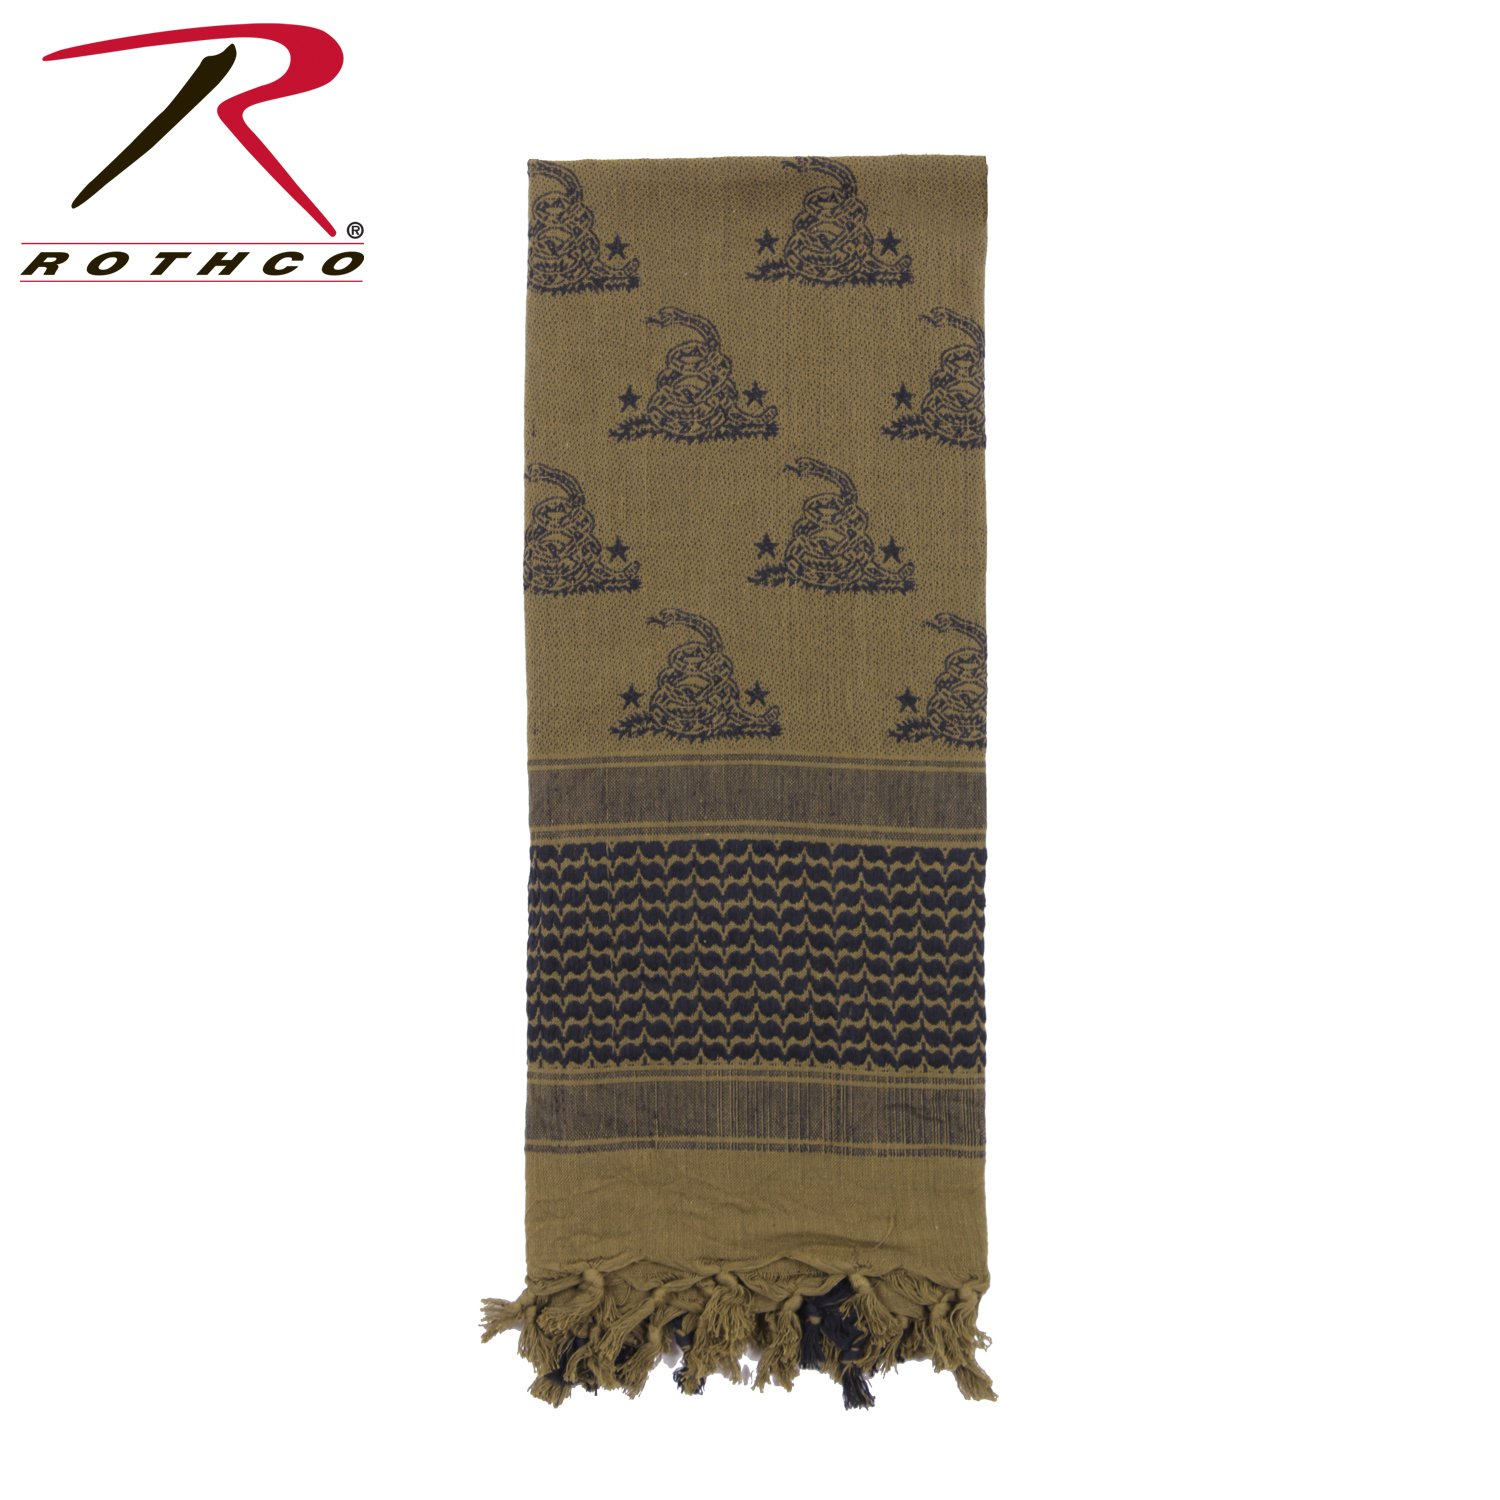 Rothco Snake Shemagh Tactical Desert Scarf, Olive Drab